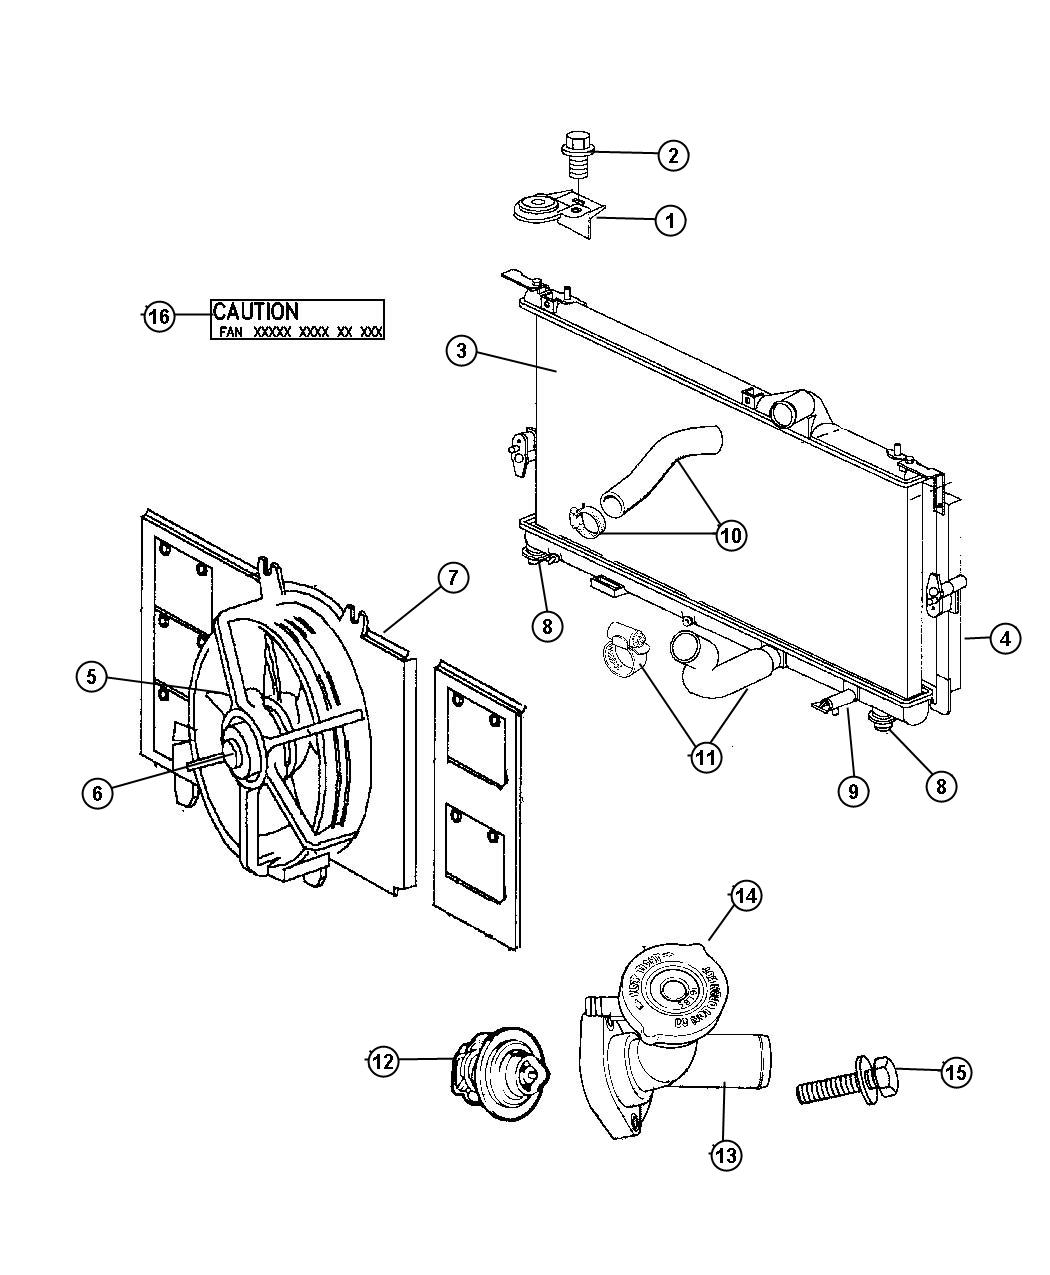 Dodge Neon Parts Diagram Great Design Of Wiring 95 Engine 2004 Car Interior Transmission 1998